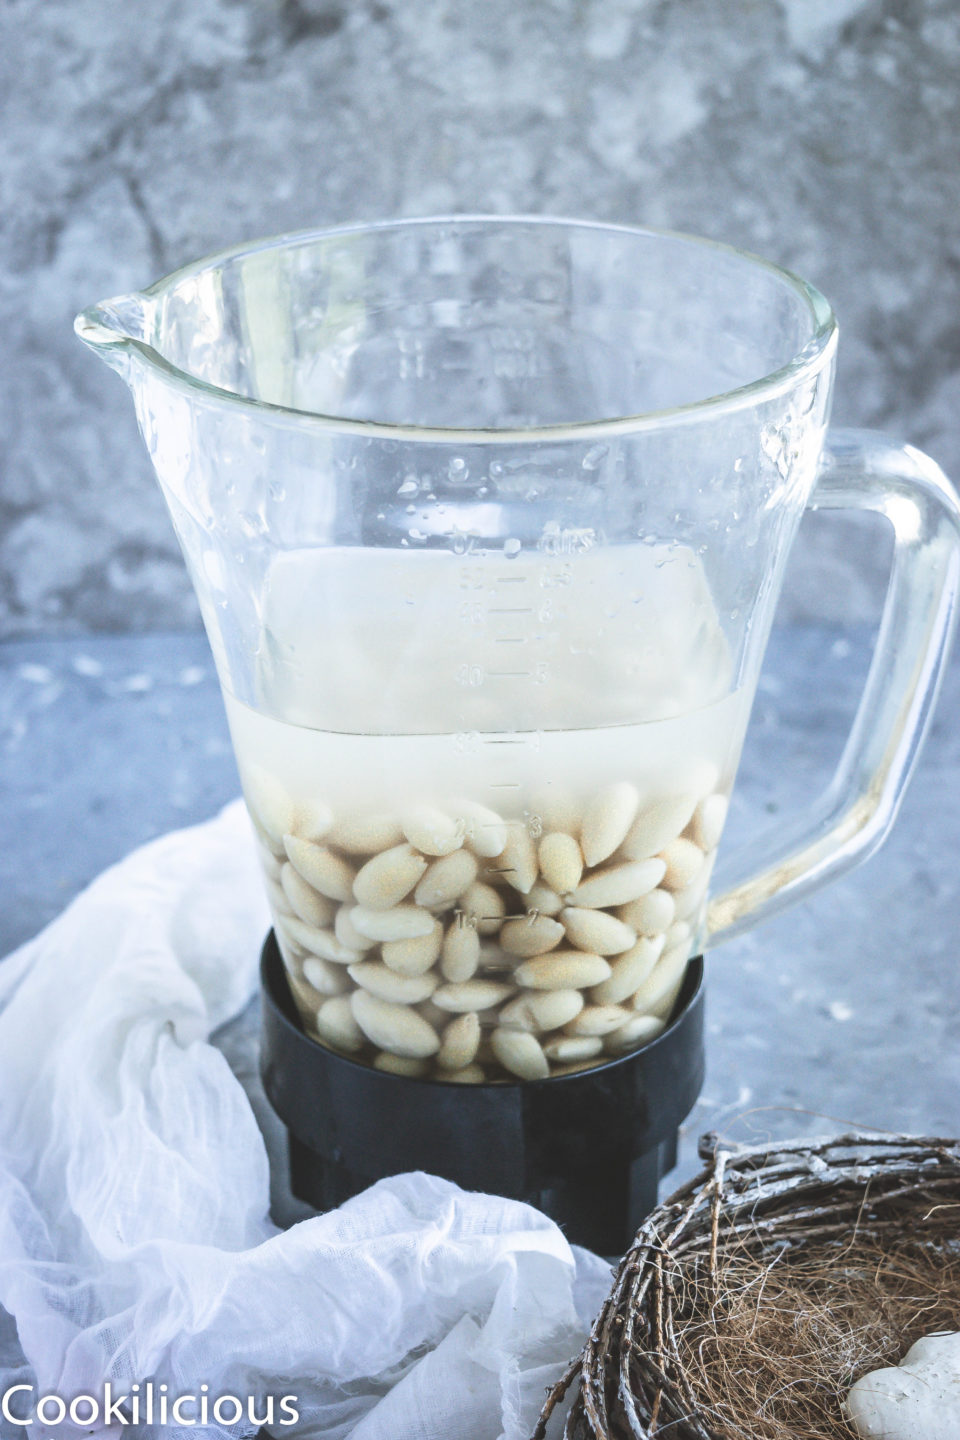 image of a blender filled with almonds & water to make Almond Milk